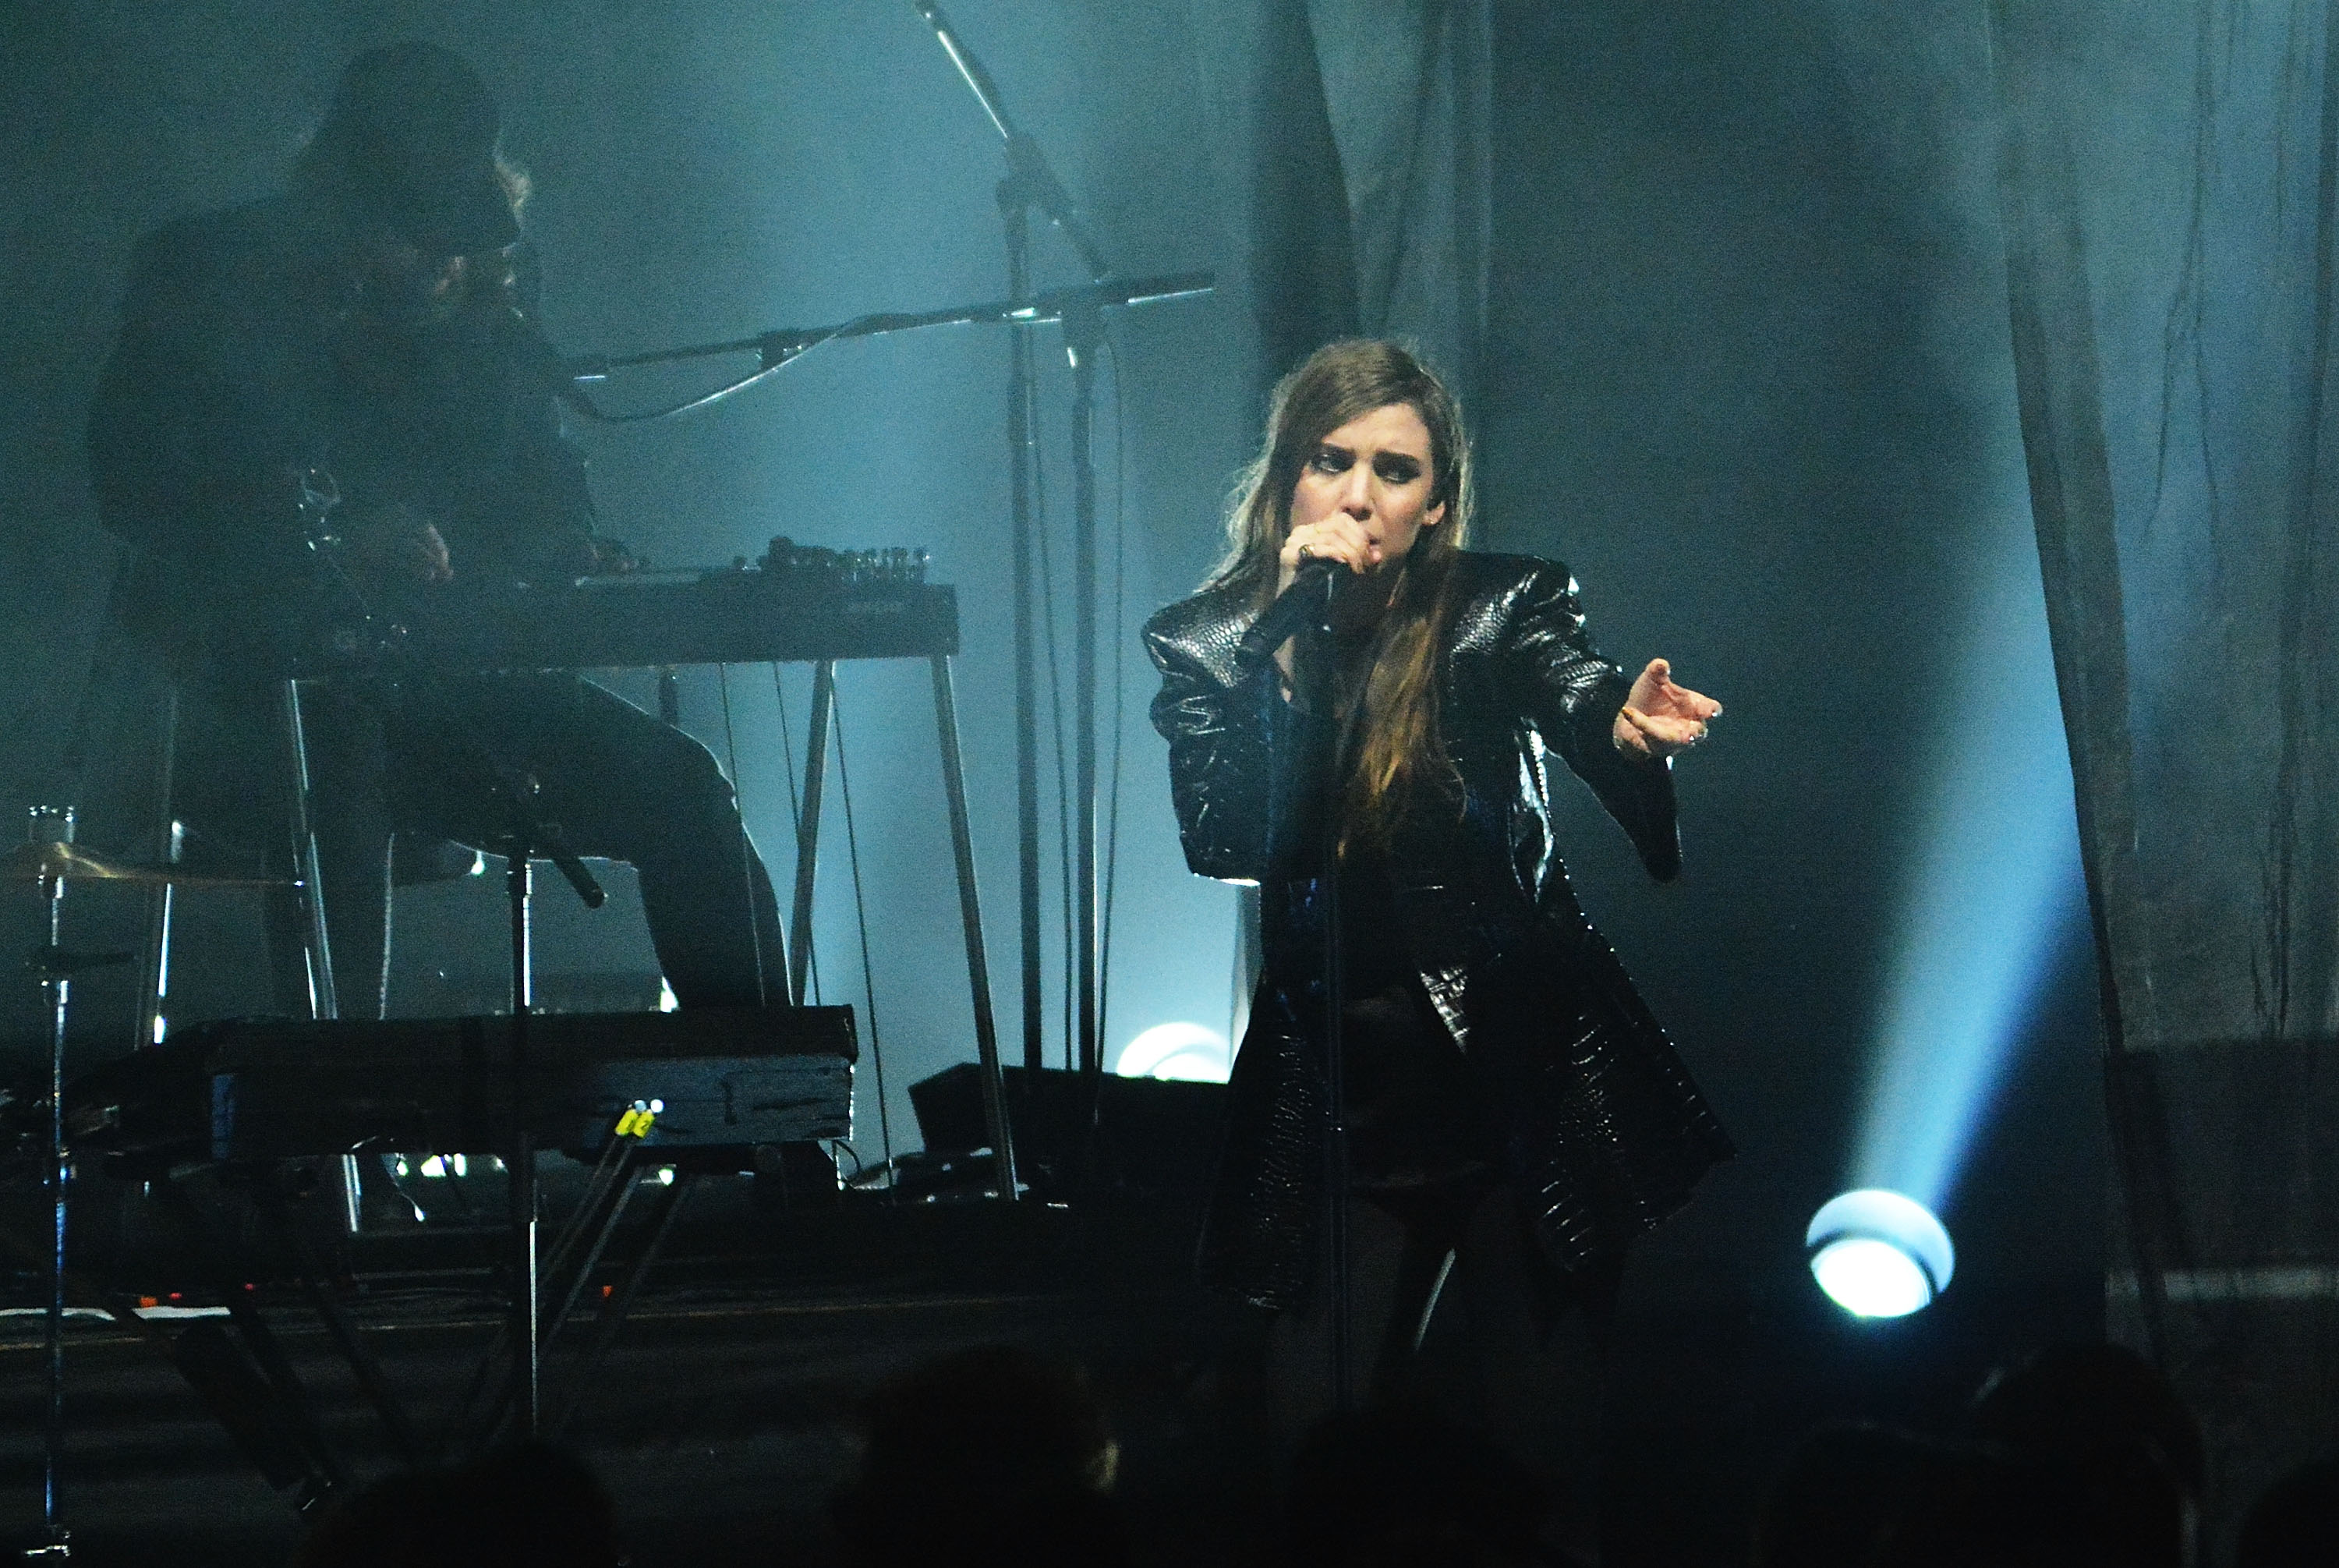 Lykke Li performs live on stage at Eventim Apollo, Hammersmith on November 13, 2014 in London, United Kingdom.